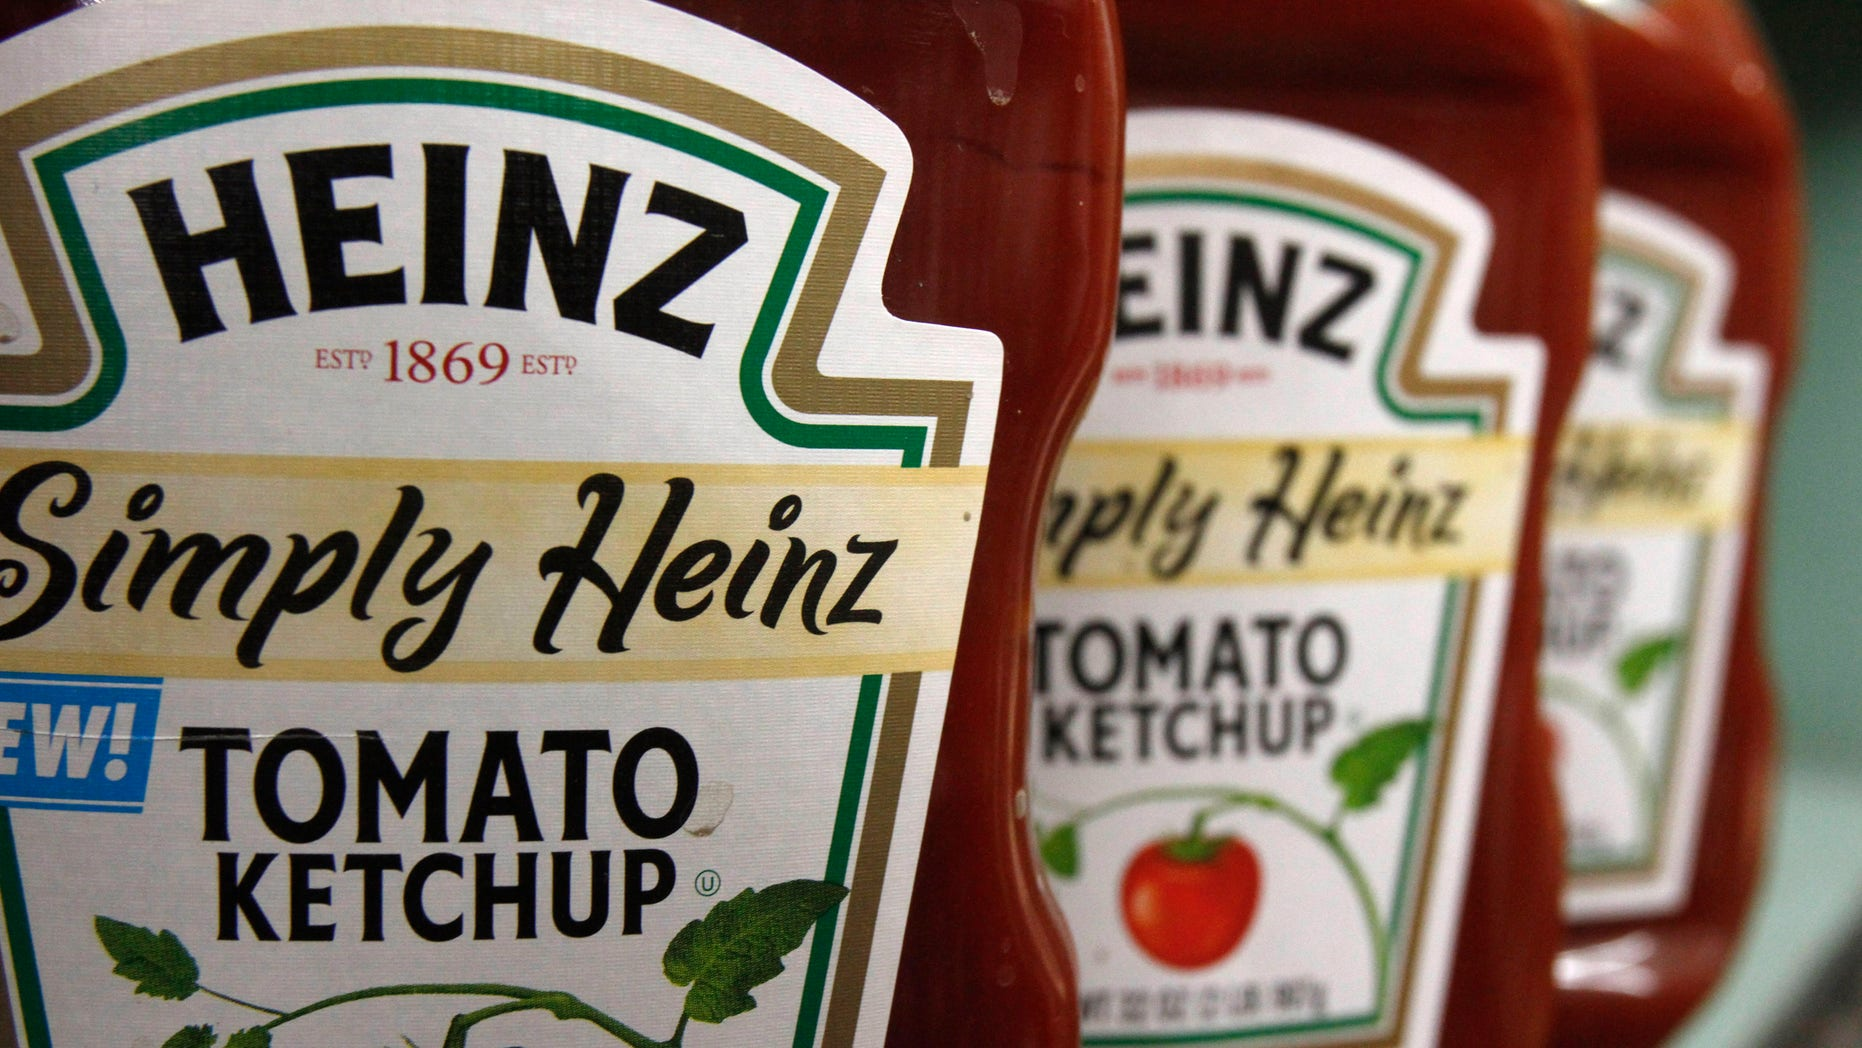 FILE - This Wednesday, March 2, 2011, file photo, shows containers of Heinz ketchup on the shelf of a market, in Barre, Vt. H.J. Heinz Co. is buying Kraft Foods Group Inc., creating what the companies say will be the third-largest food and beverage company in North America, the companies announced Wednesday, March 25, 2015. (AP Photo/Toby Talbot, File)